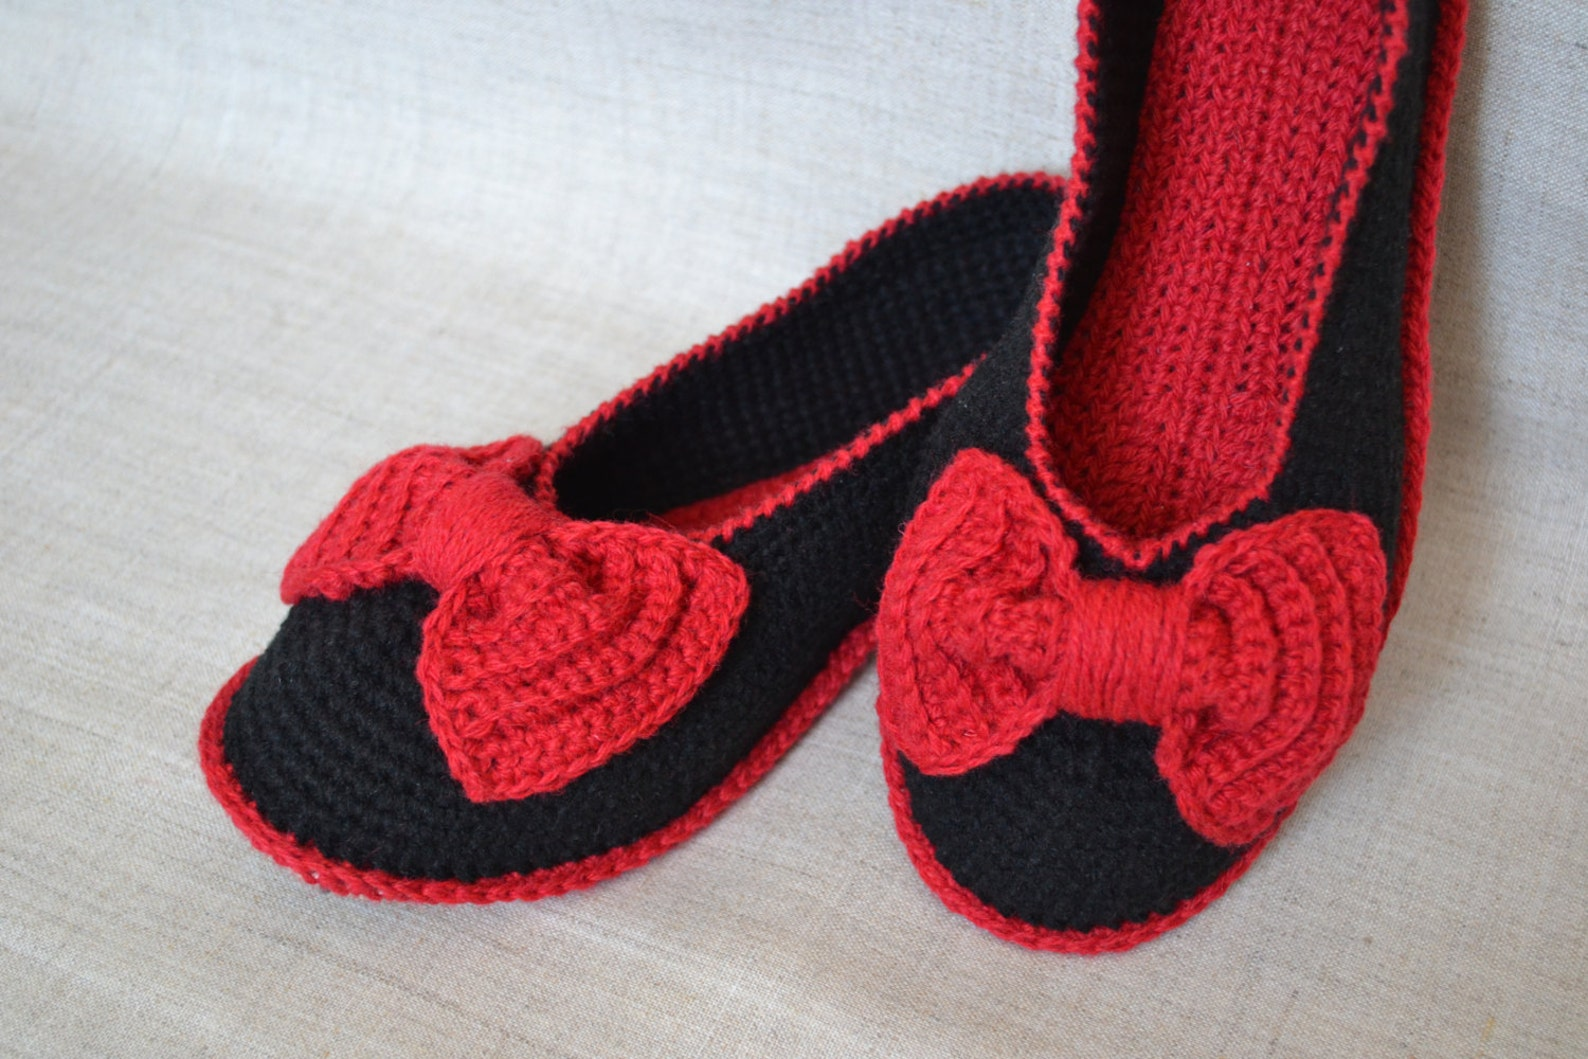 black slippers. knitted ballet shoes. knitting. women's knitted slippers. knitted socks. slippers for youth. slippers, socks